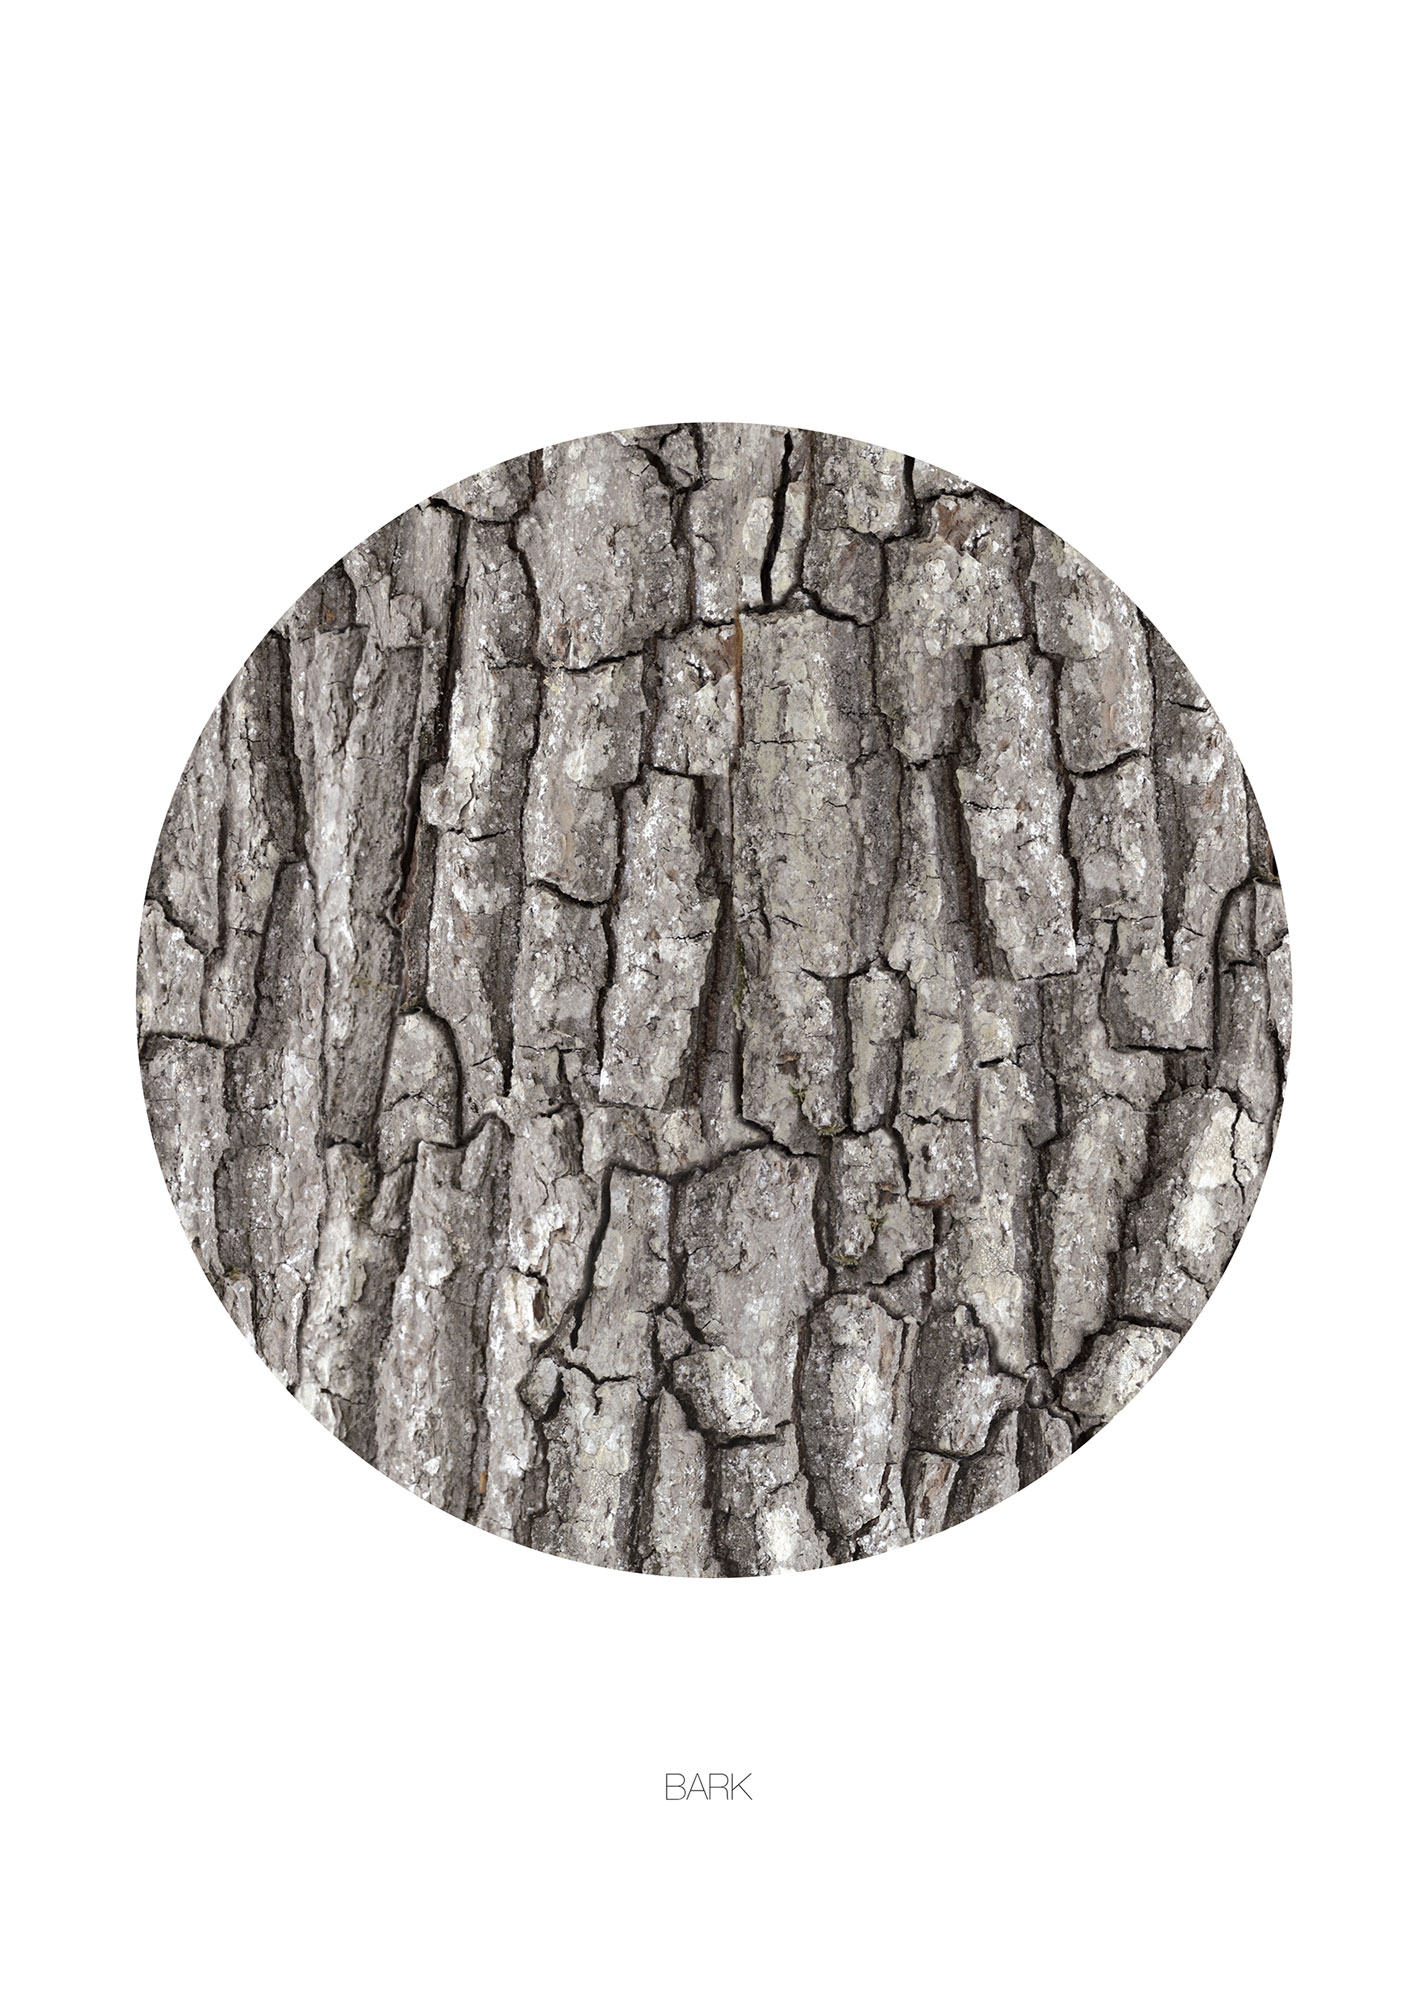 Image of   BARK - CIRCLE-A4